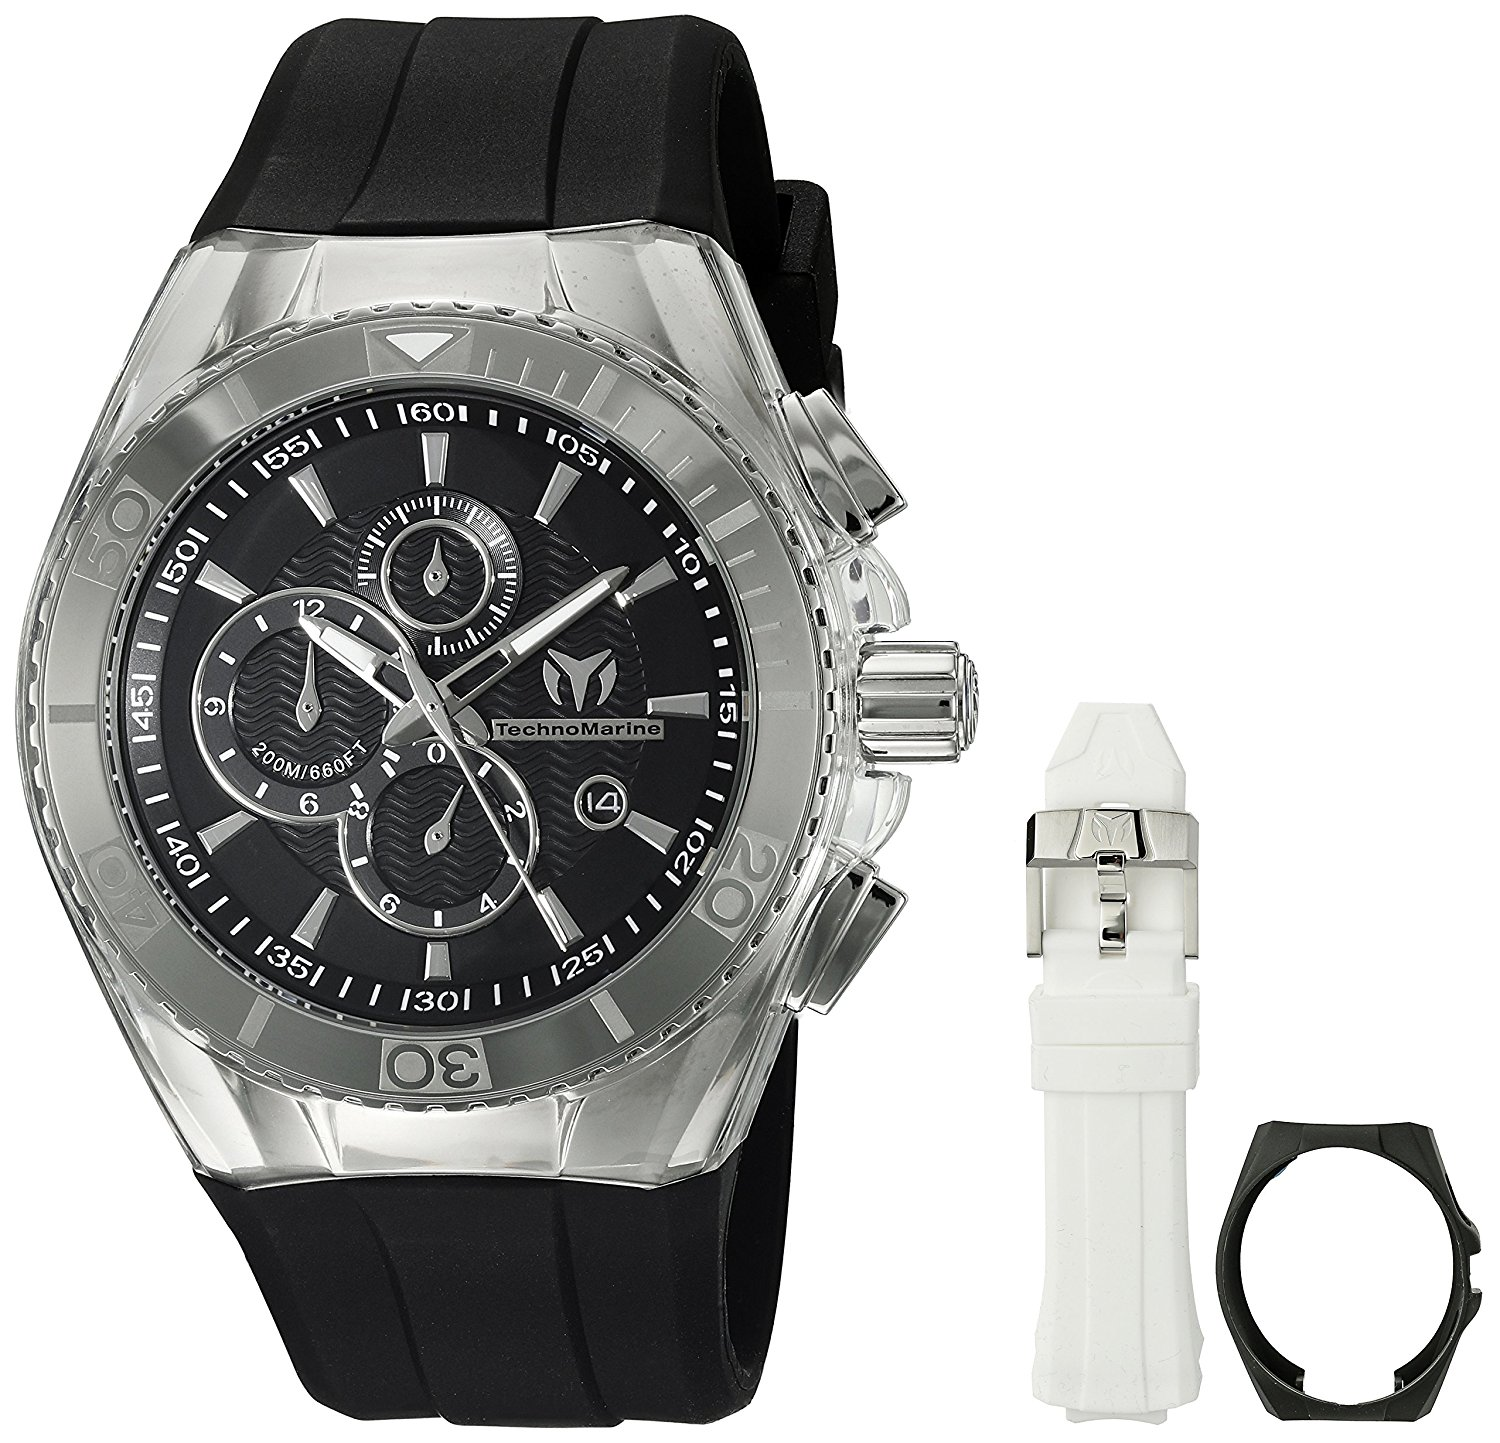 Technomarine Men's TM-115042 Cruise Original Analog Display Quartz Black Watch